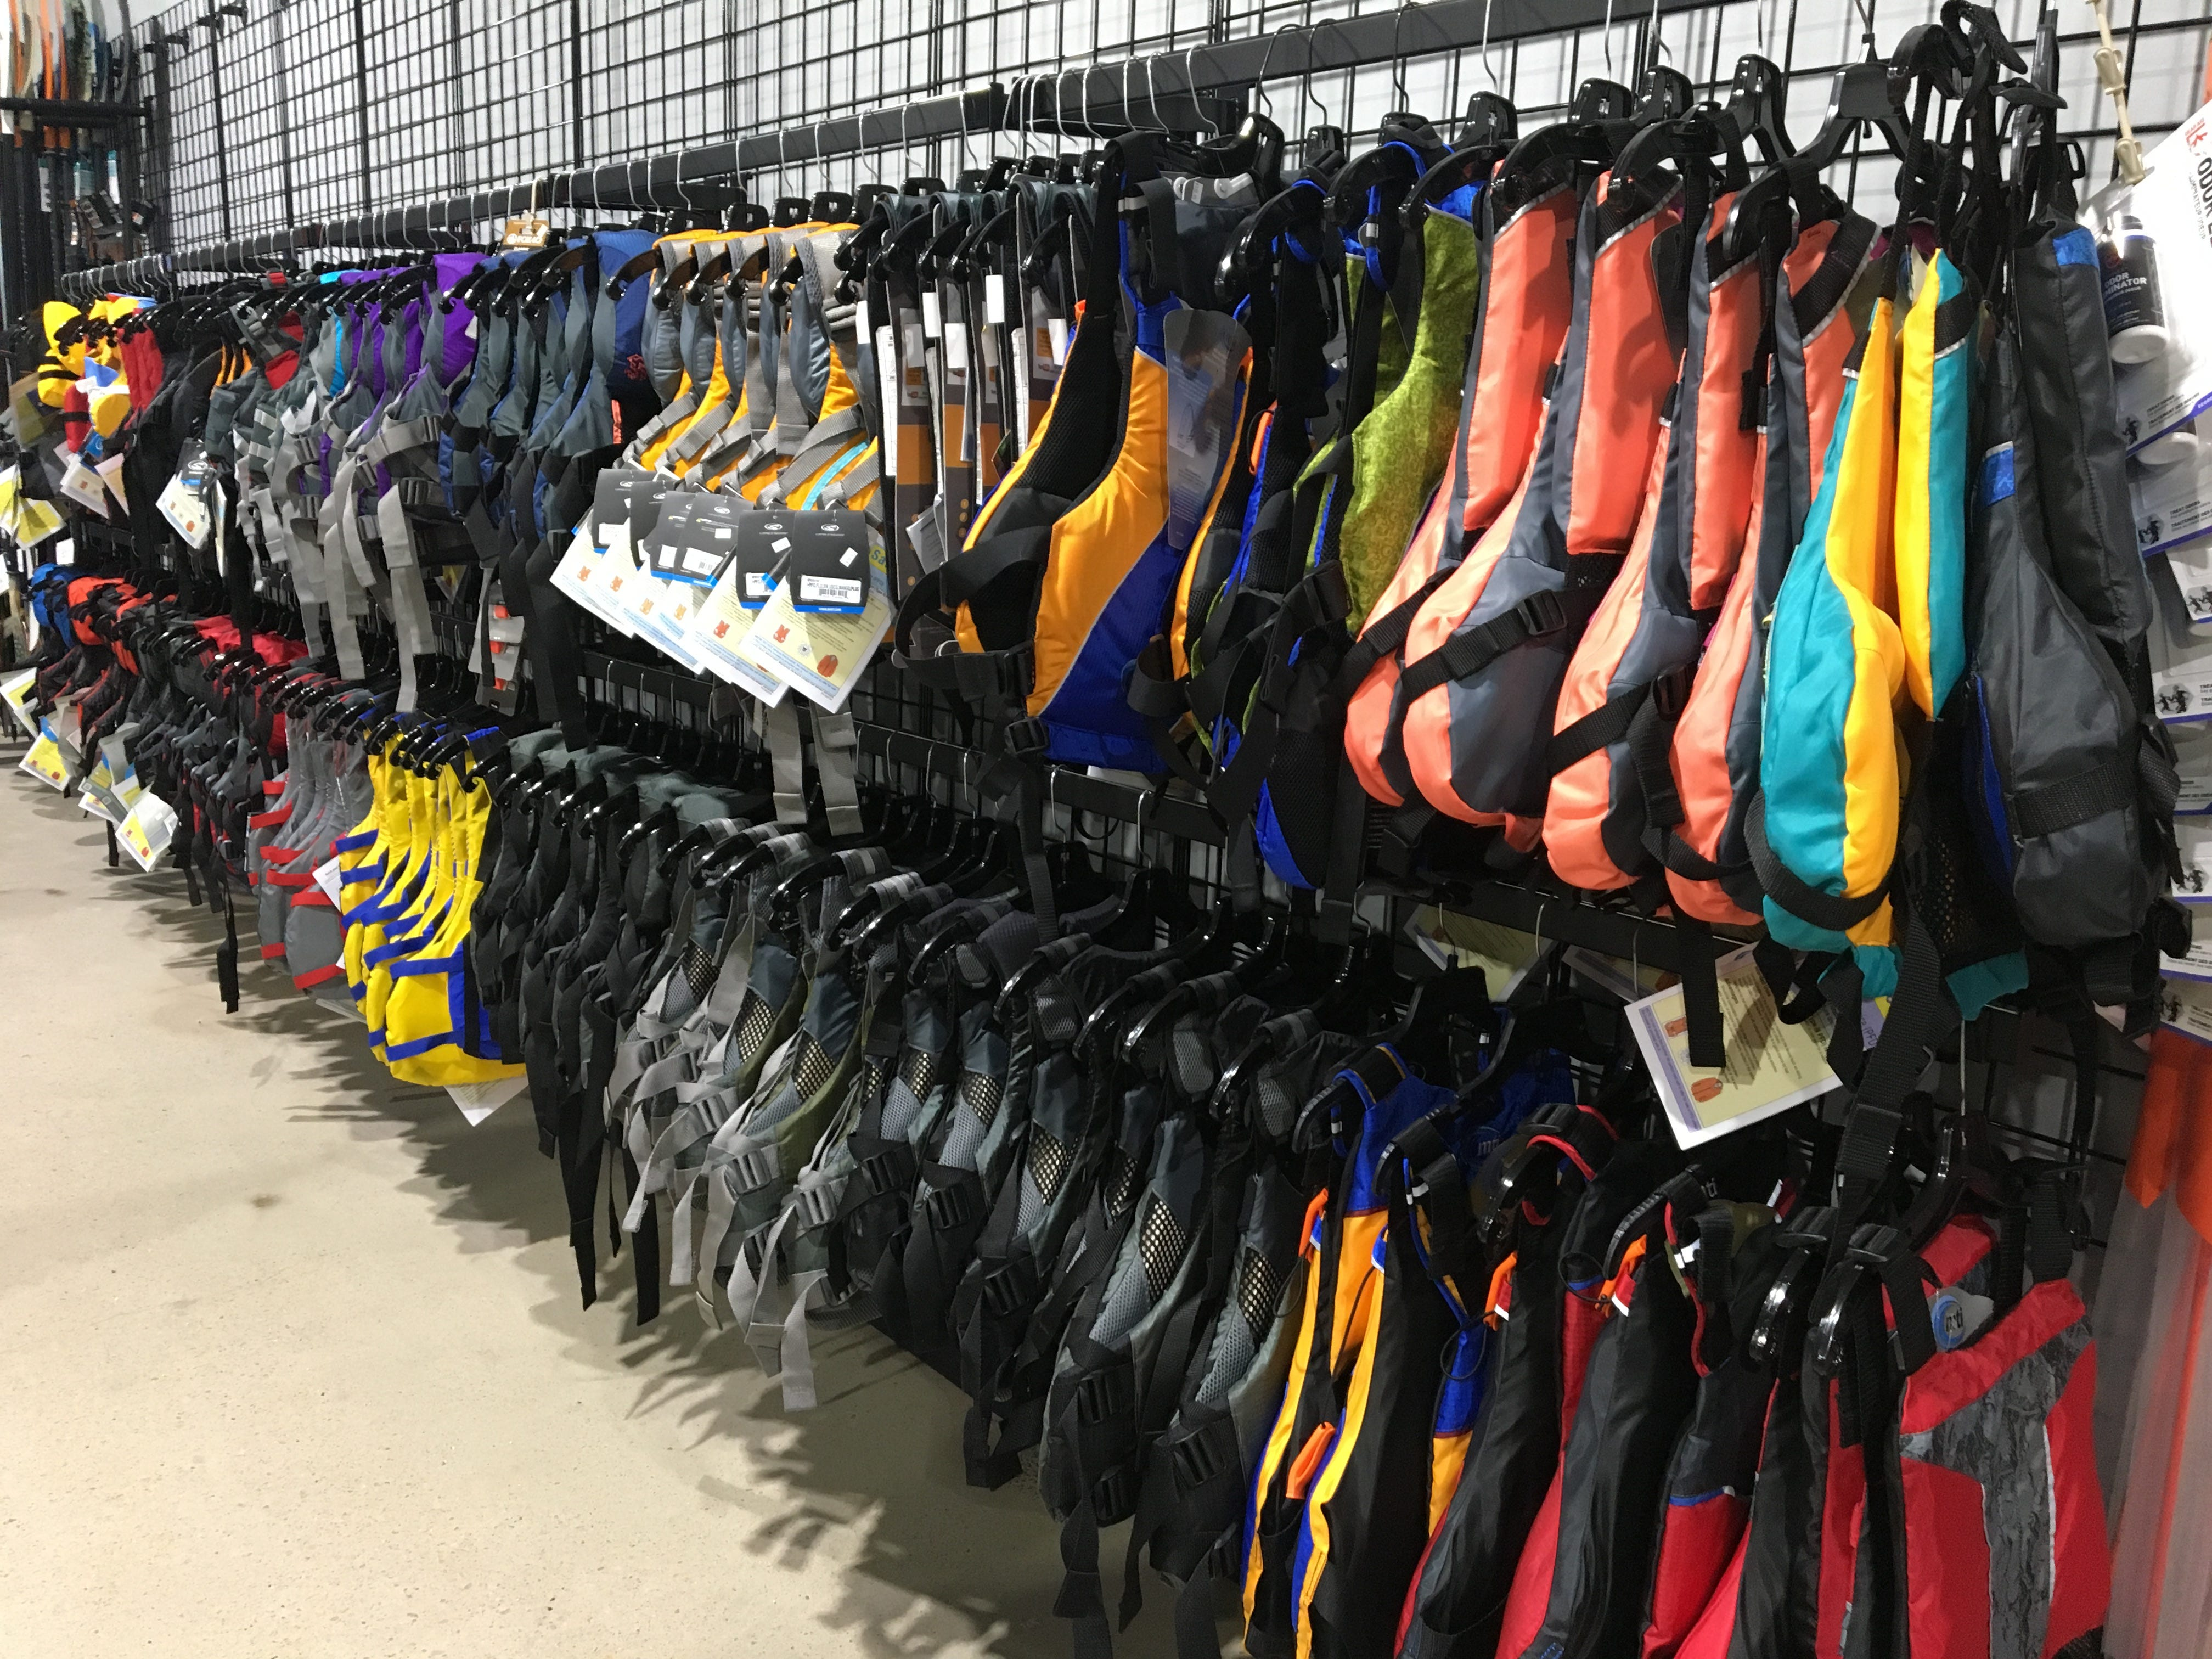 The No. 1 rule on the water is safety, so be sure you have a quality life jacket. Hook 1 outfitters in Murfreesboro sells a variety of sizes and styles.